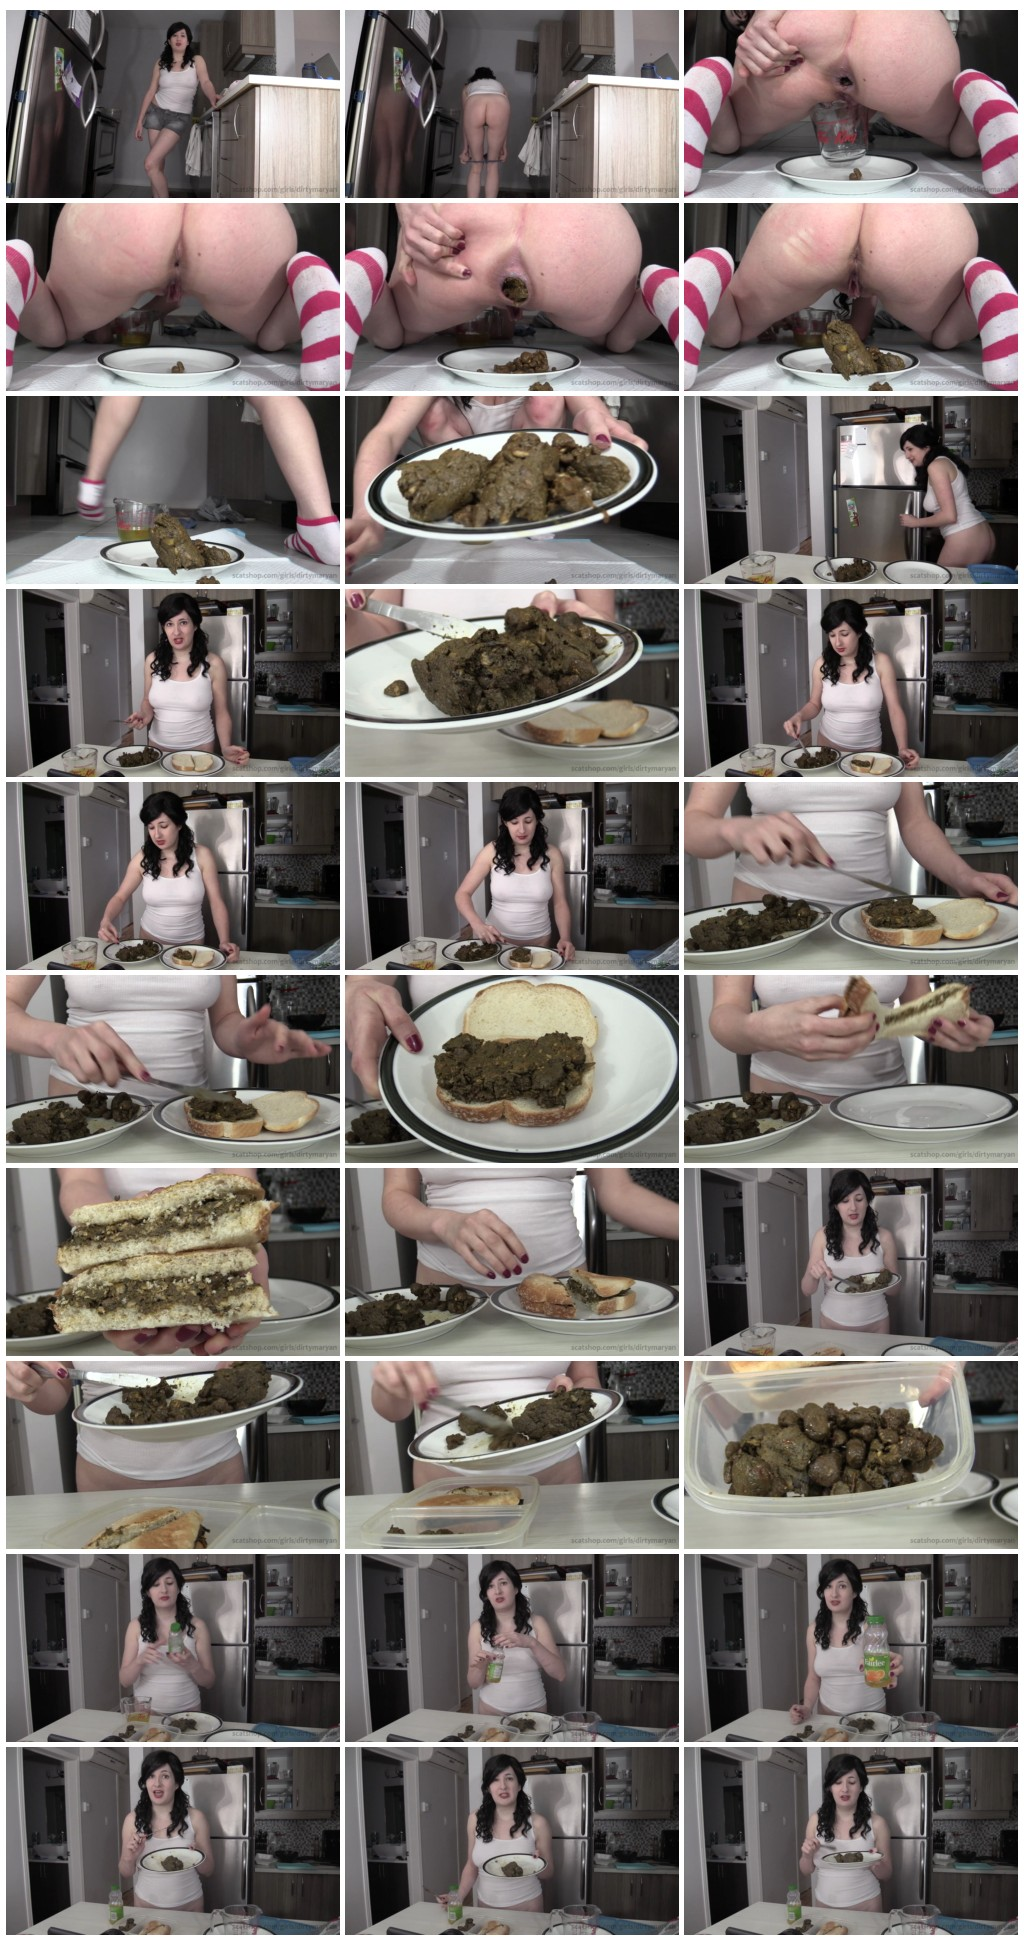 Scatshop.com DirtyMaryan Making a shit sandwich for your lunch at work Scat Poop Videos Toilet Slavery thumb - [Scatshop com] DirtyMaryan - Making a shit sandwich for your lunch at work [Scat, Poop Videos, Toilet Slavery]